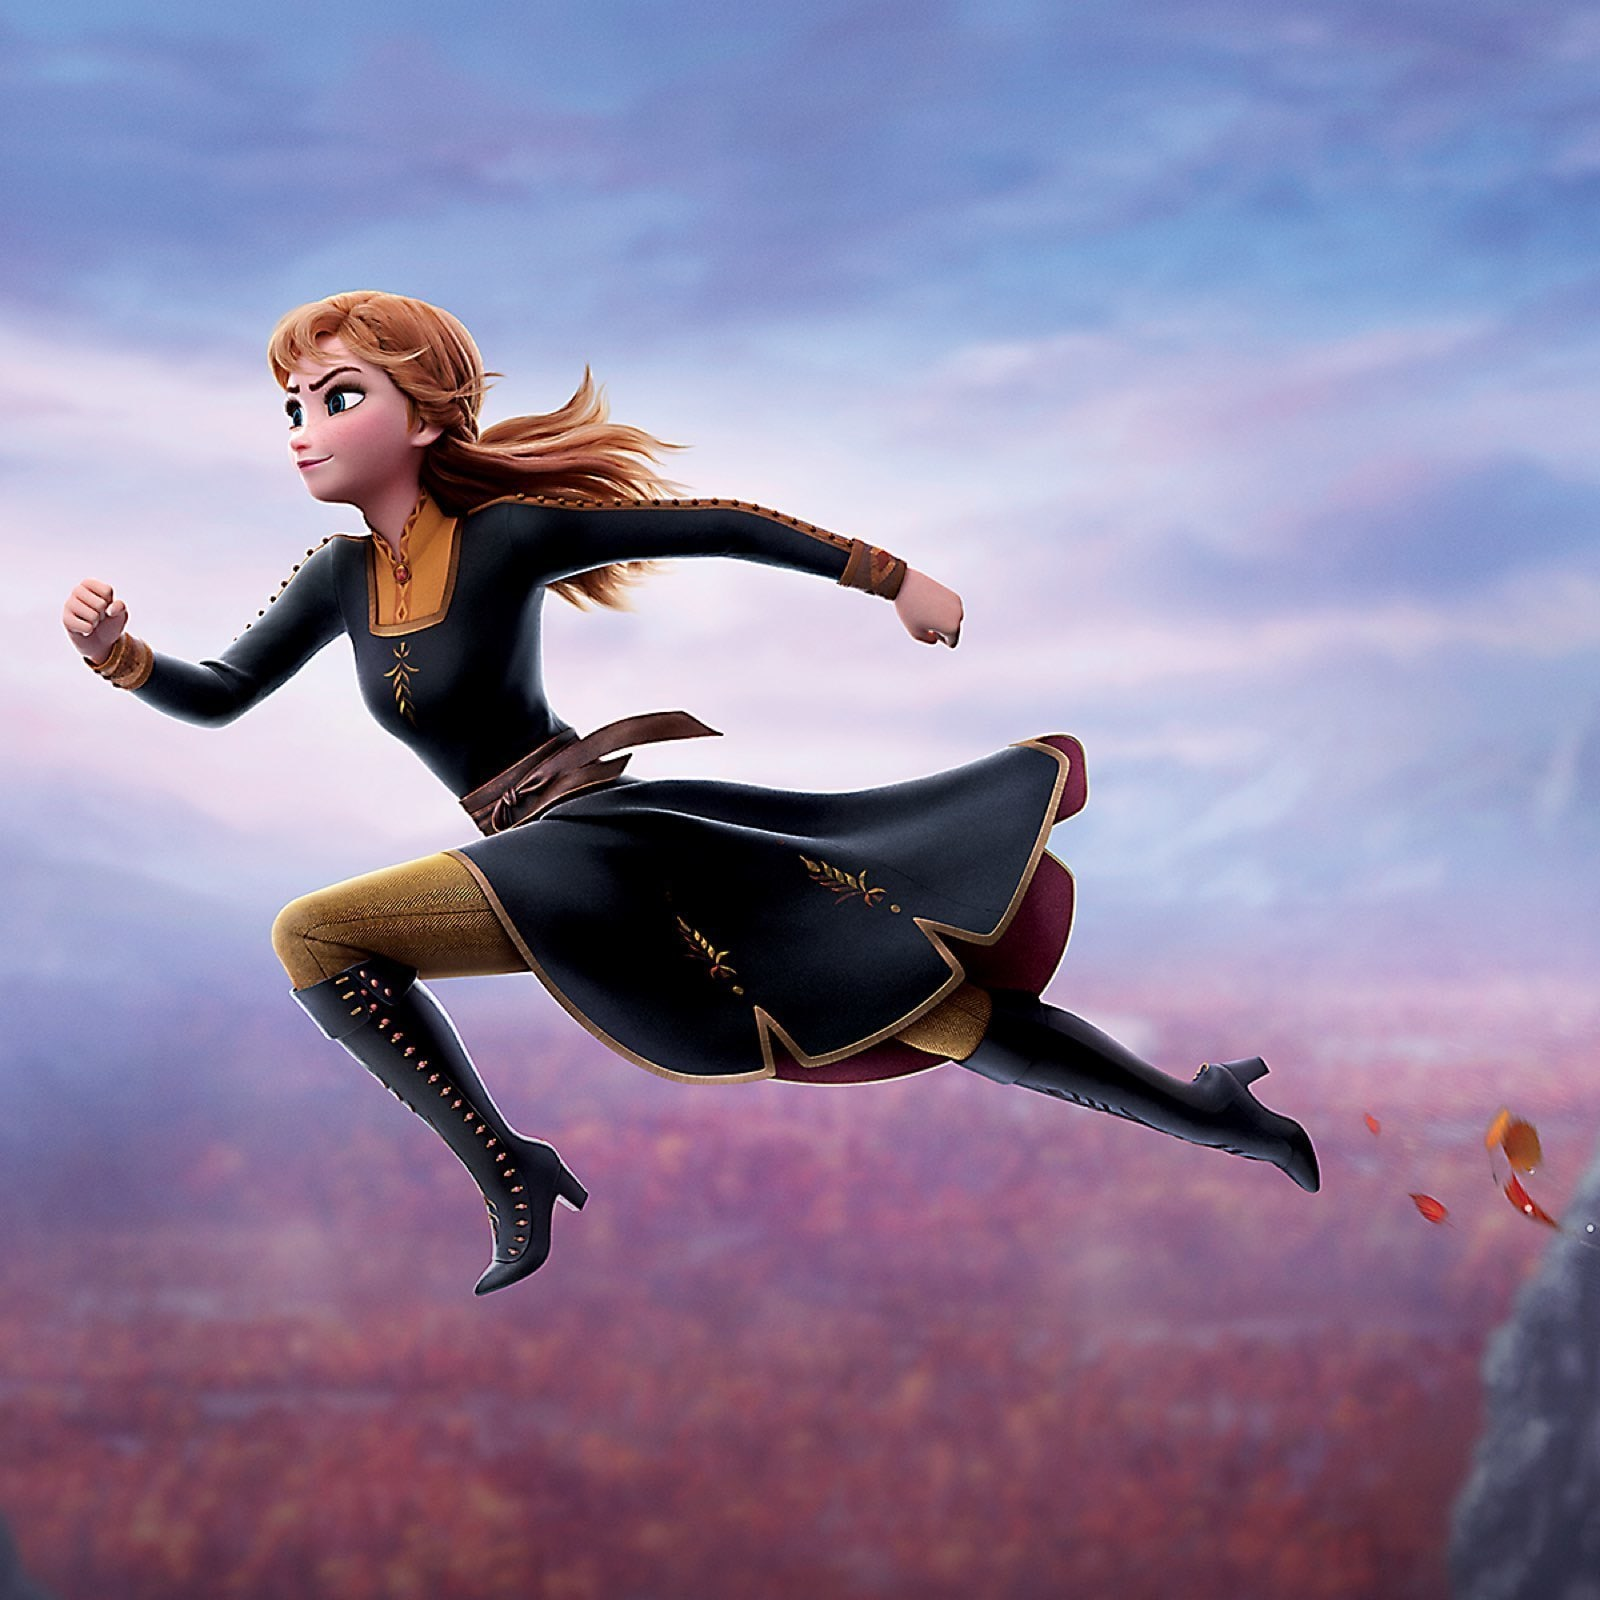 Anna from Frozen jumping over a ravine